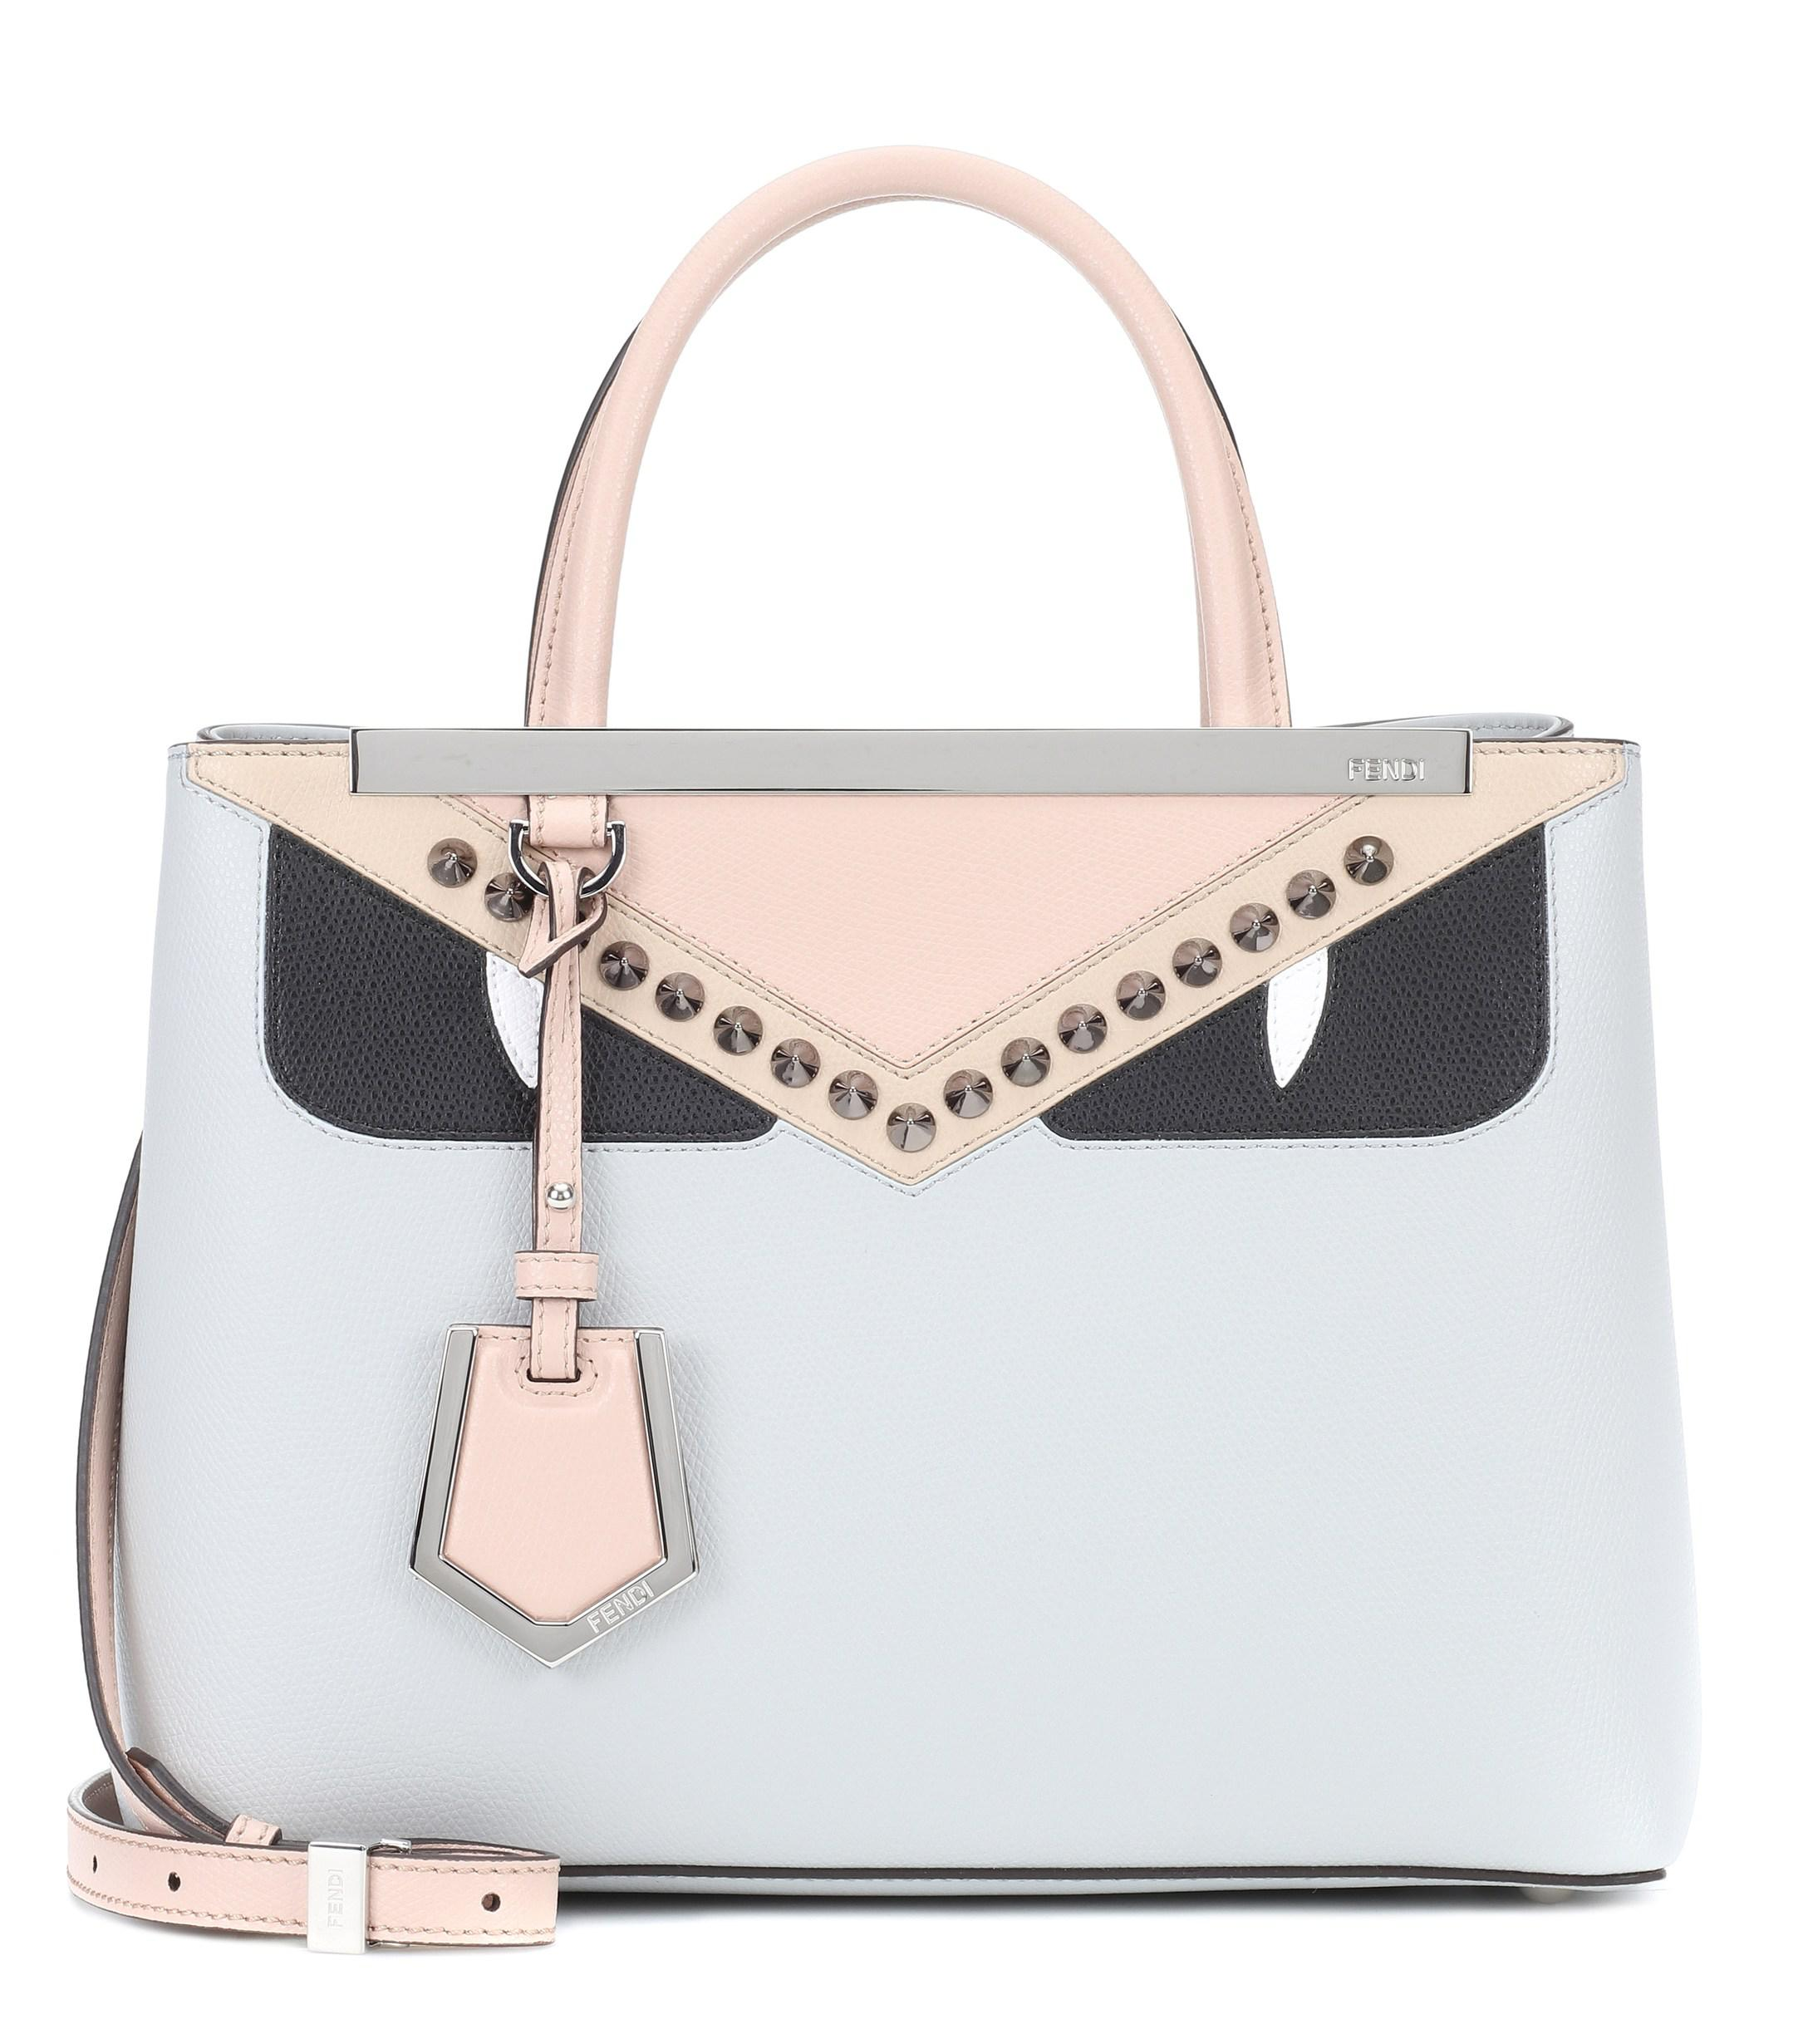 a0a40a5476d0 Lyst - Fendi 2jours Petite Leather Tote